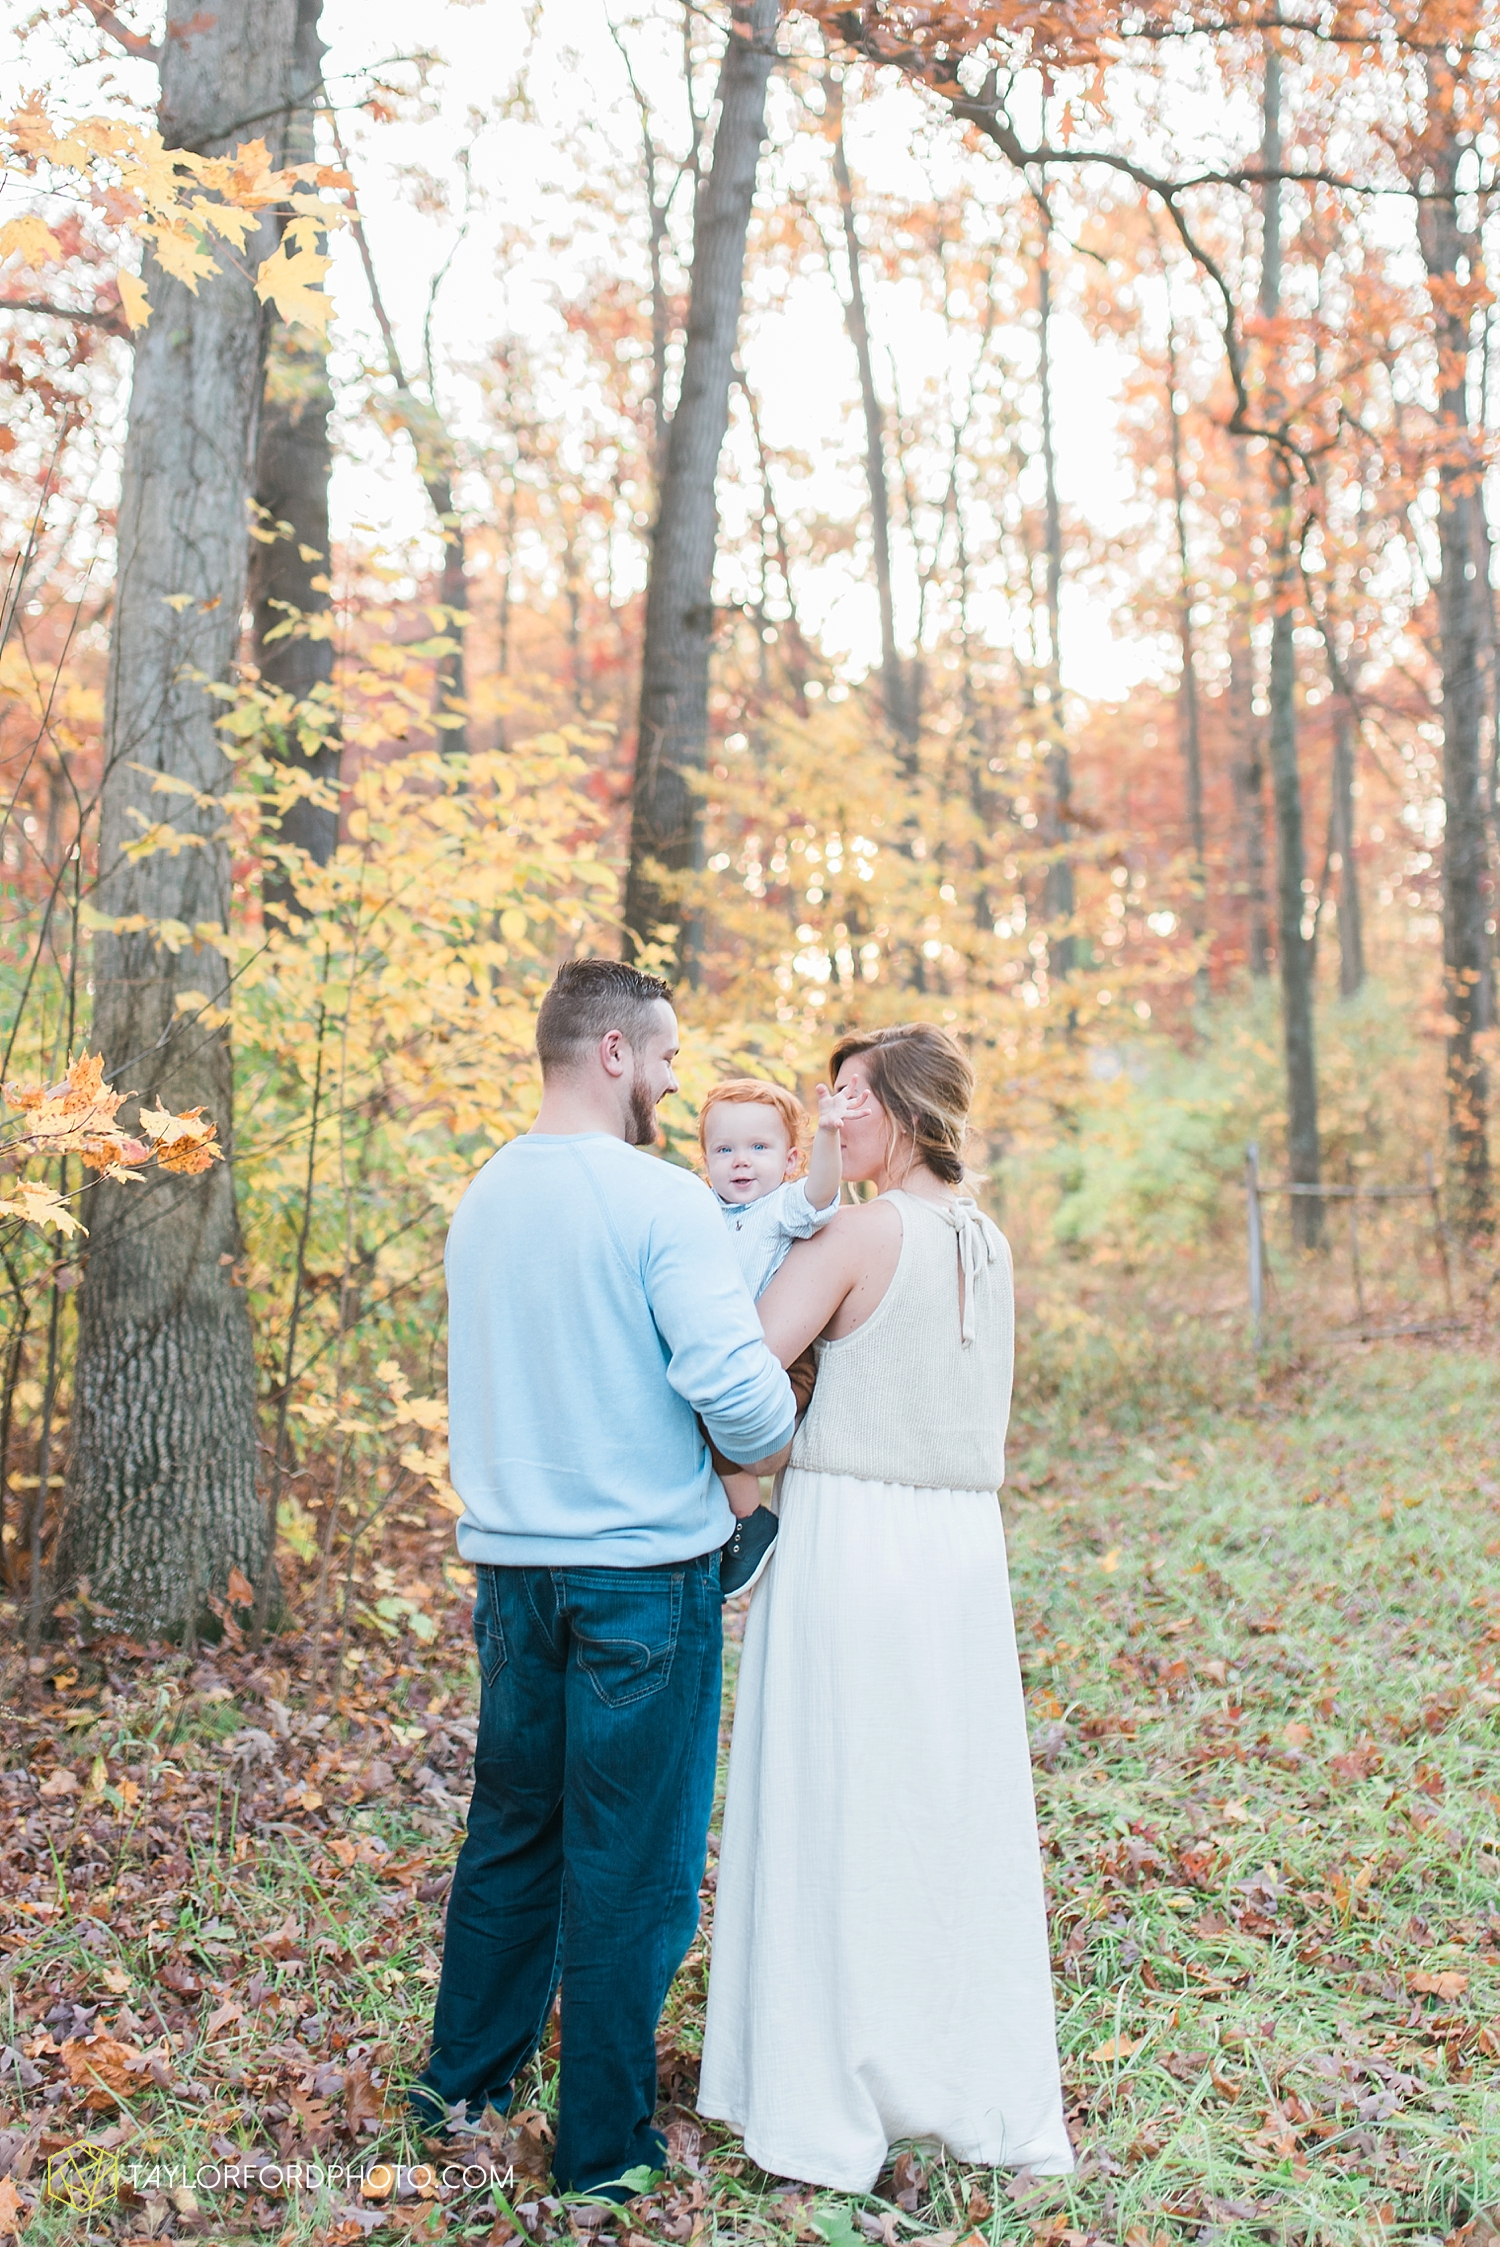 huntertown_indiana_family_photographer_taylor_ford_3613.jpg